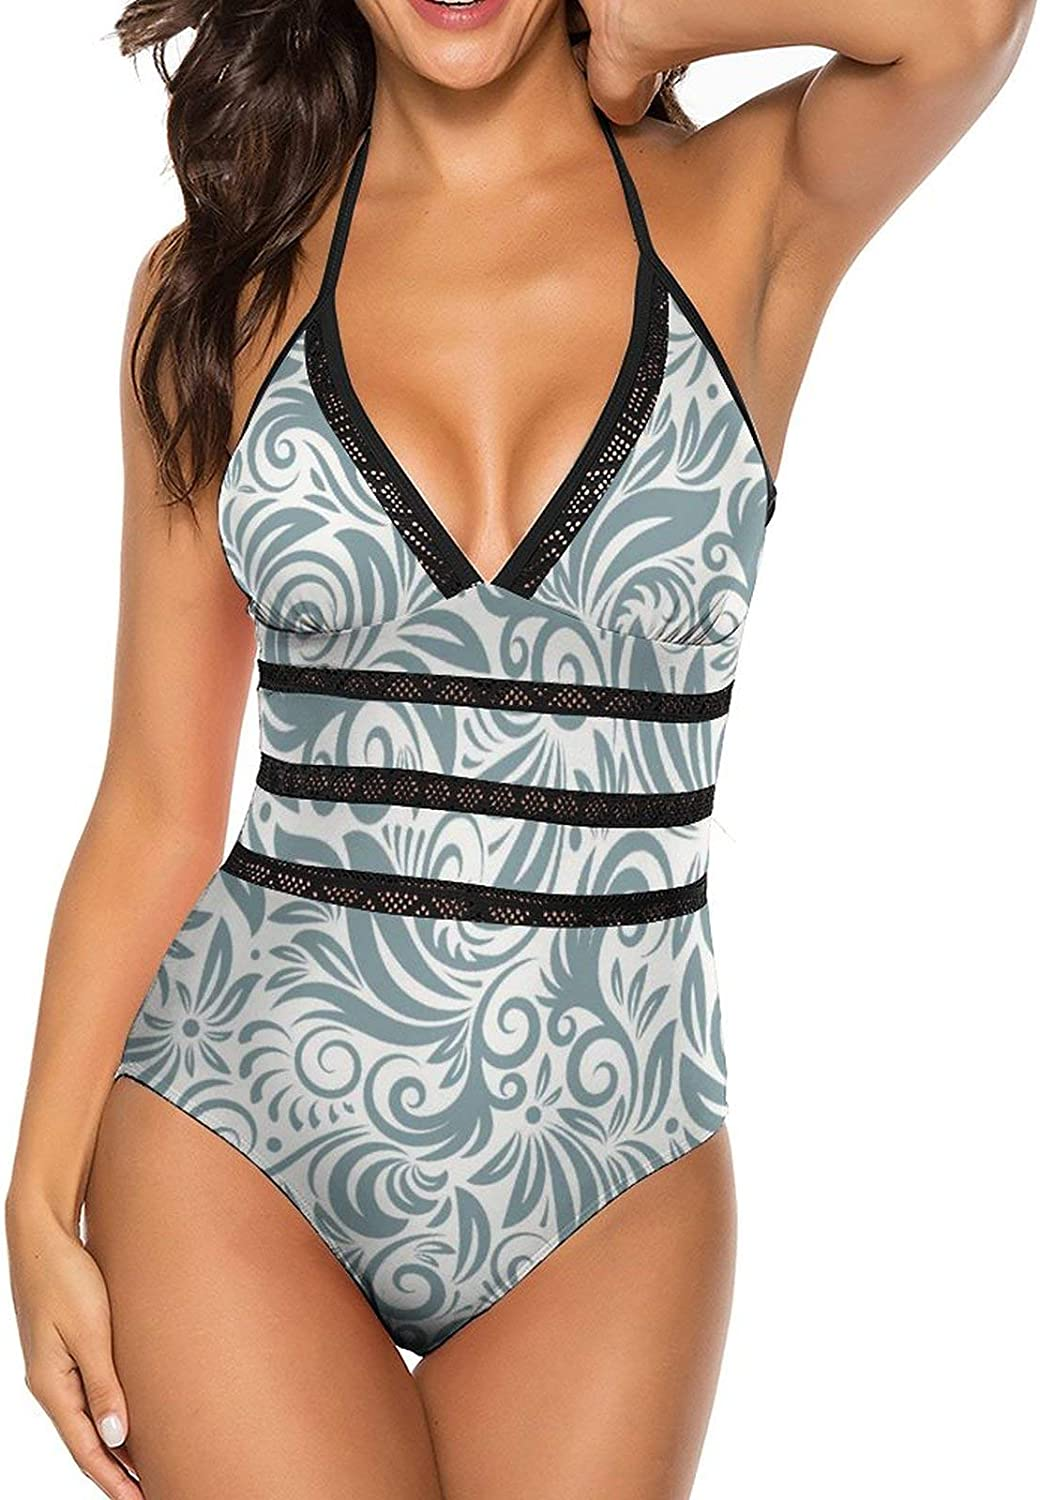 Avini Women's Popularity One Piece Swimsuits with Neck Straps V 5 ☆ popular Hollow Sexy